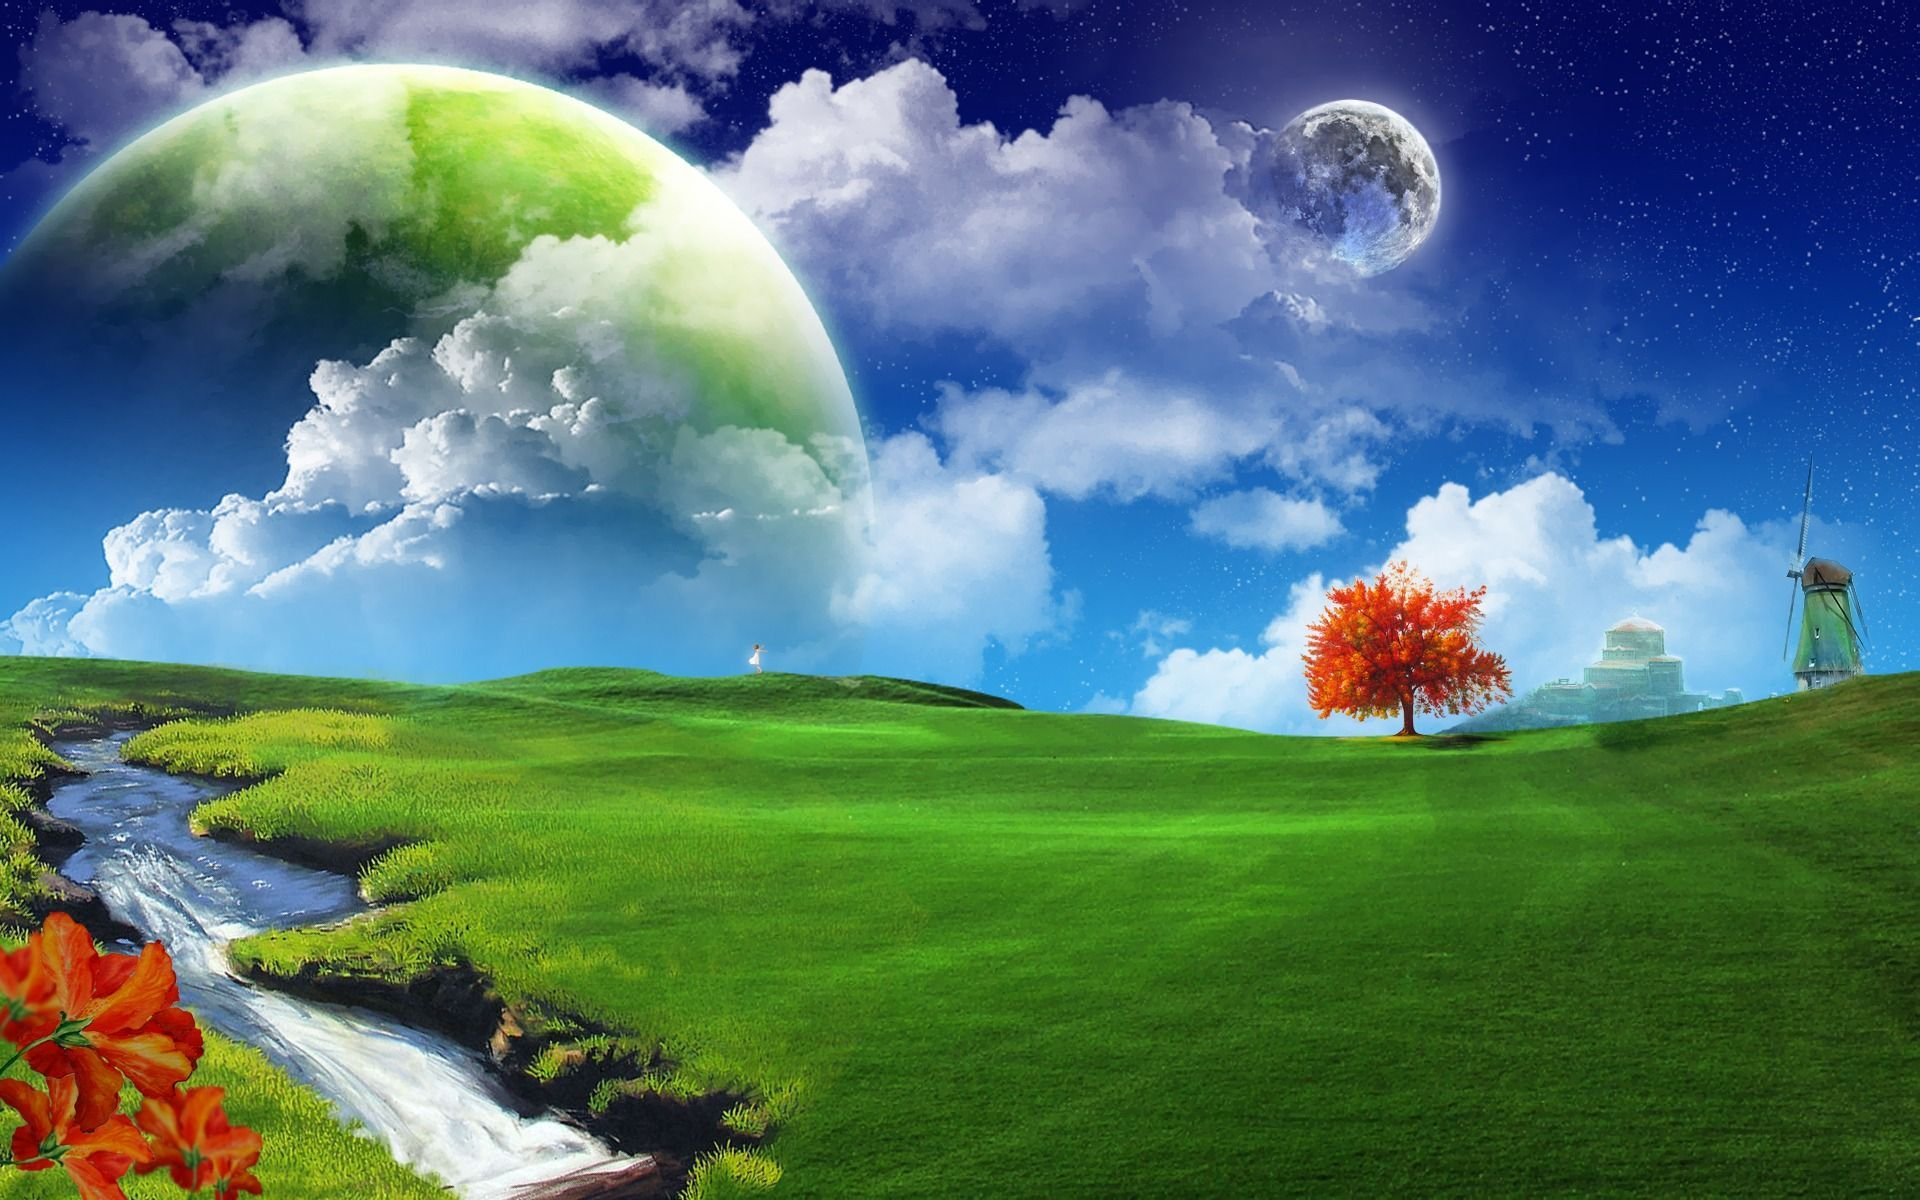 Download 3d wallpapers for desktop free download with - 3d animation pictures desktop ...